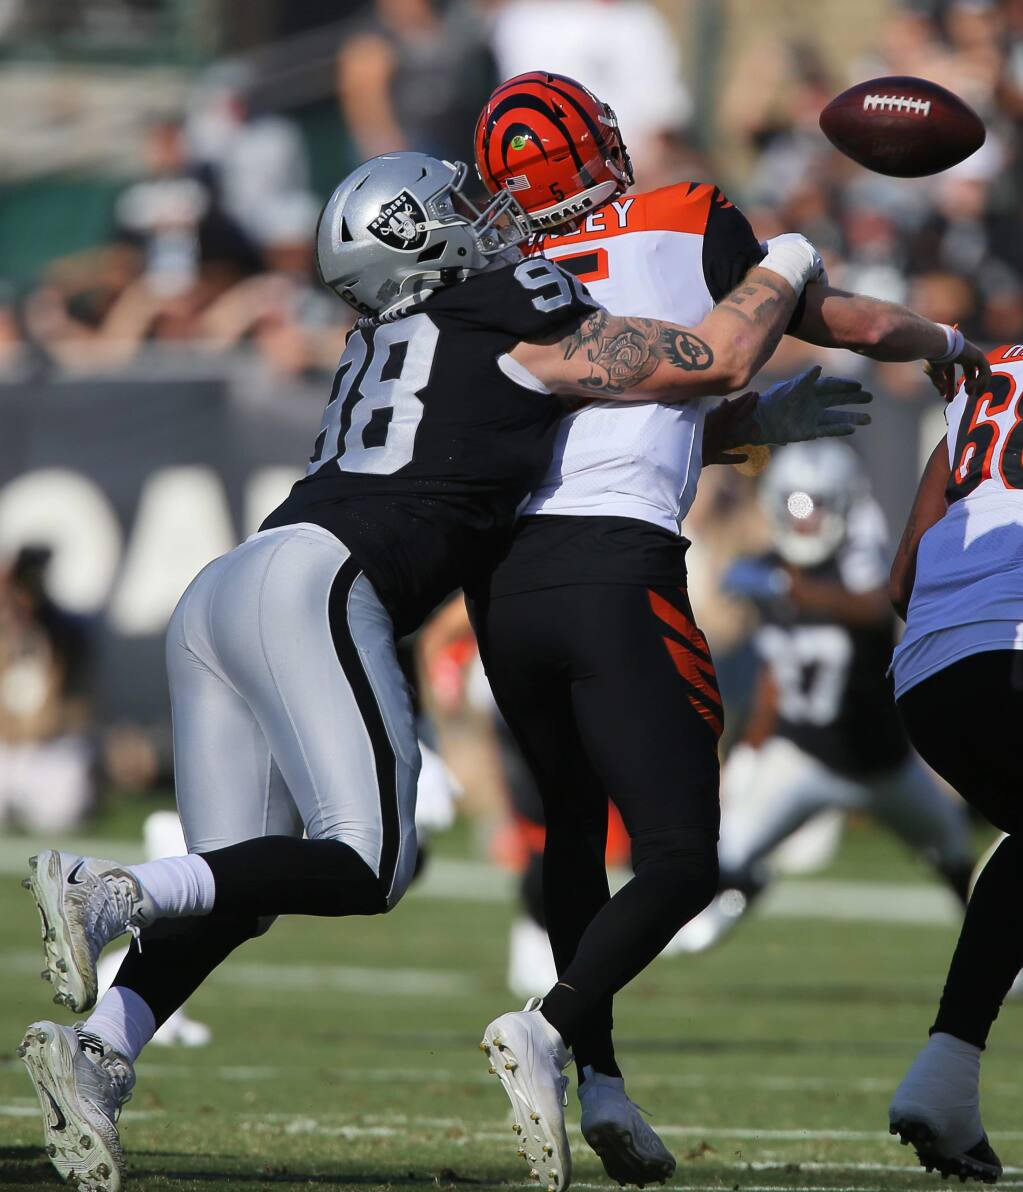 Oakland Raiders defensive end Maxx Crosby strips the ball from Cincinnati Bengals quarterback Ryan Finley during their game in Oakland on Sunday, November 17, 2019. (Christopher Chung/ The Press Democrat)